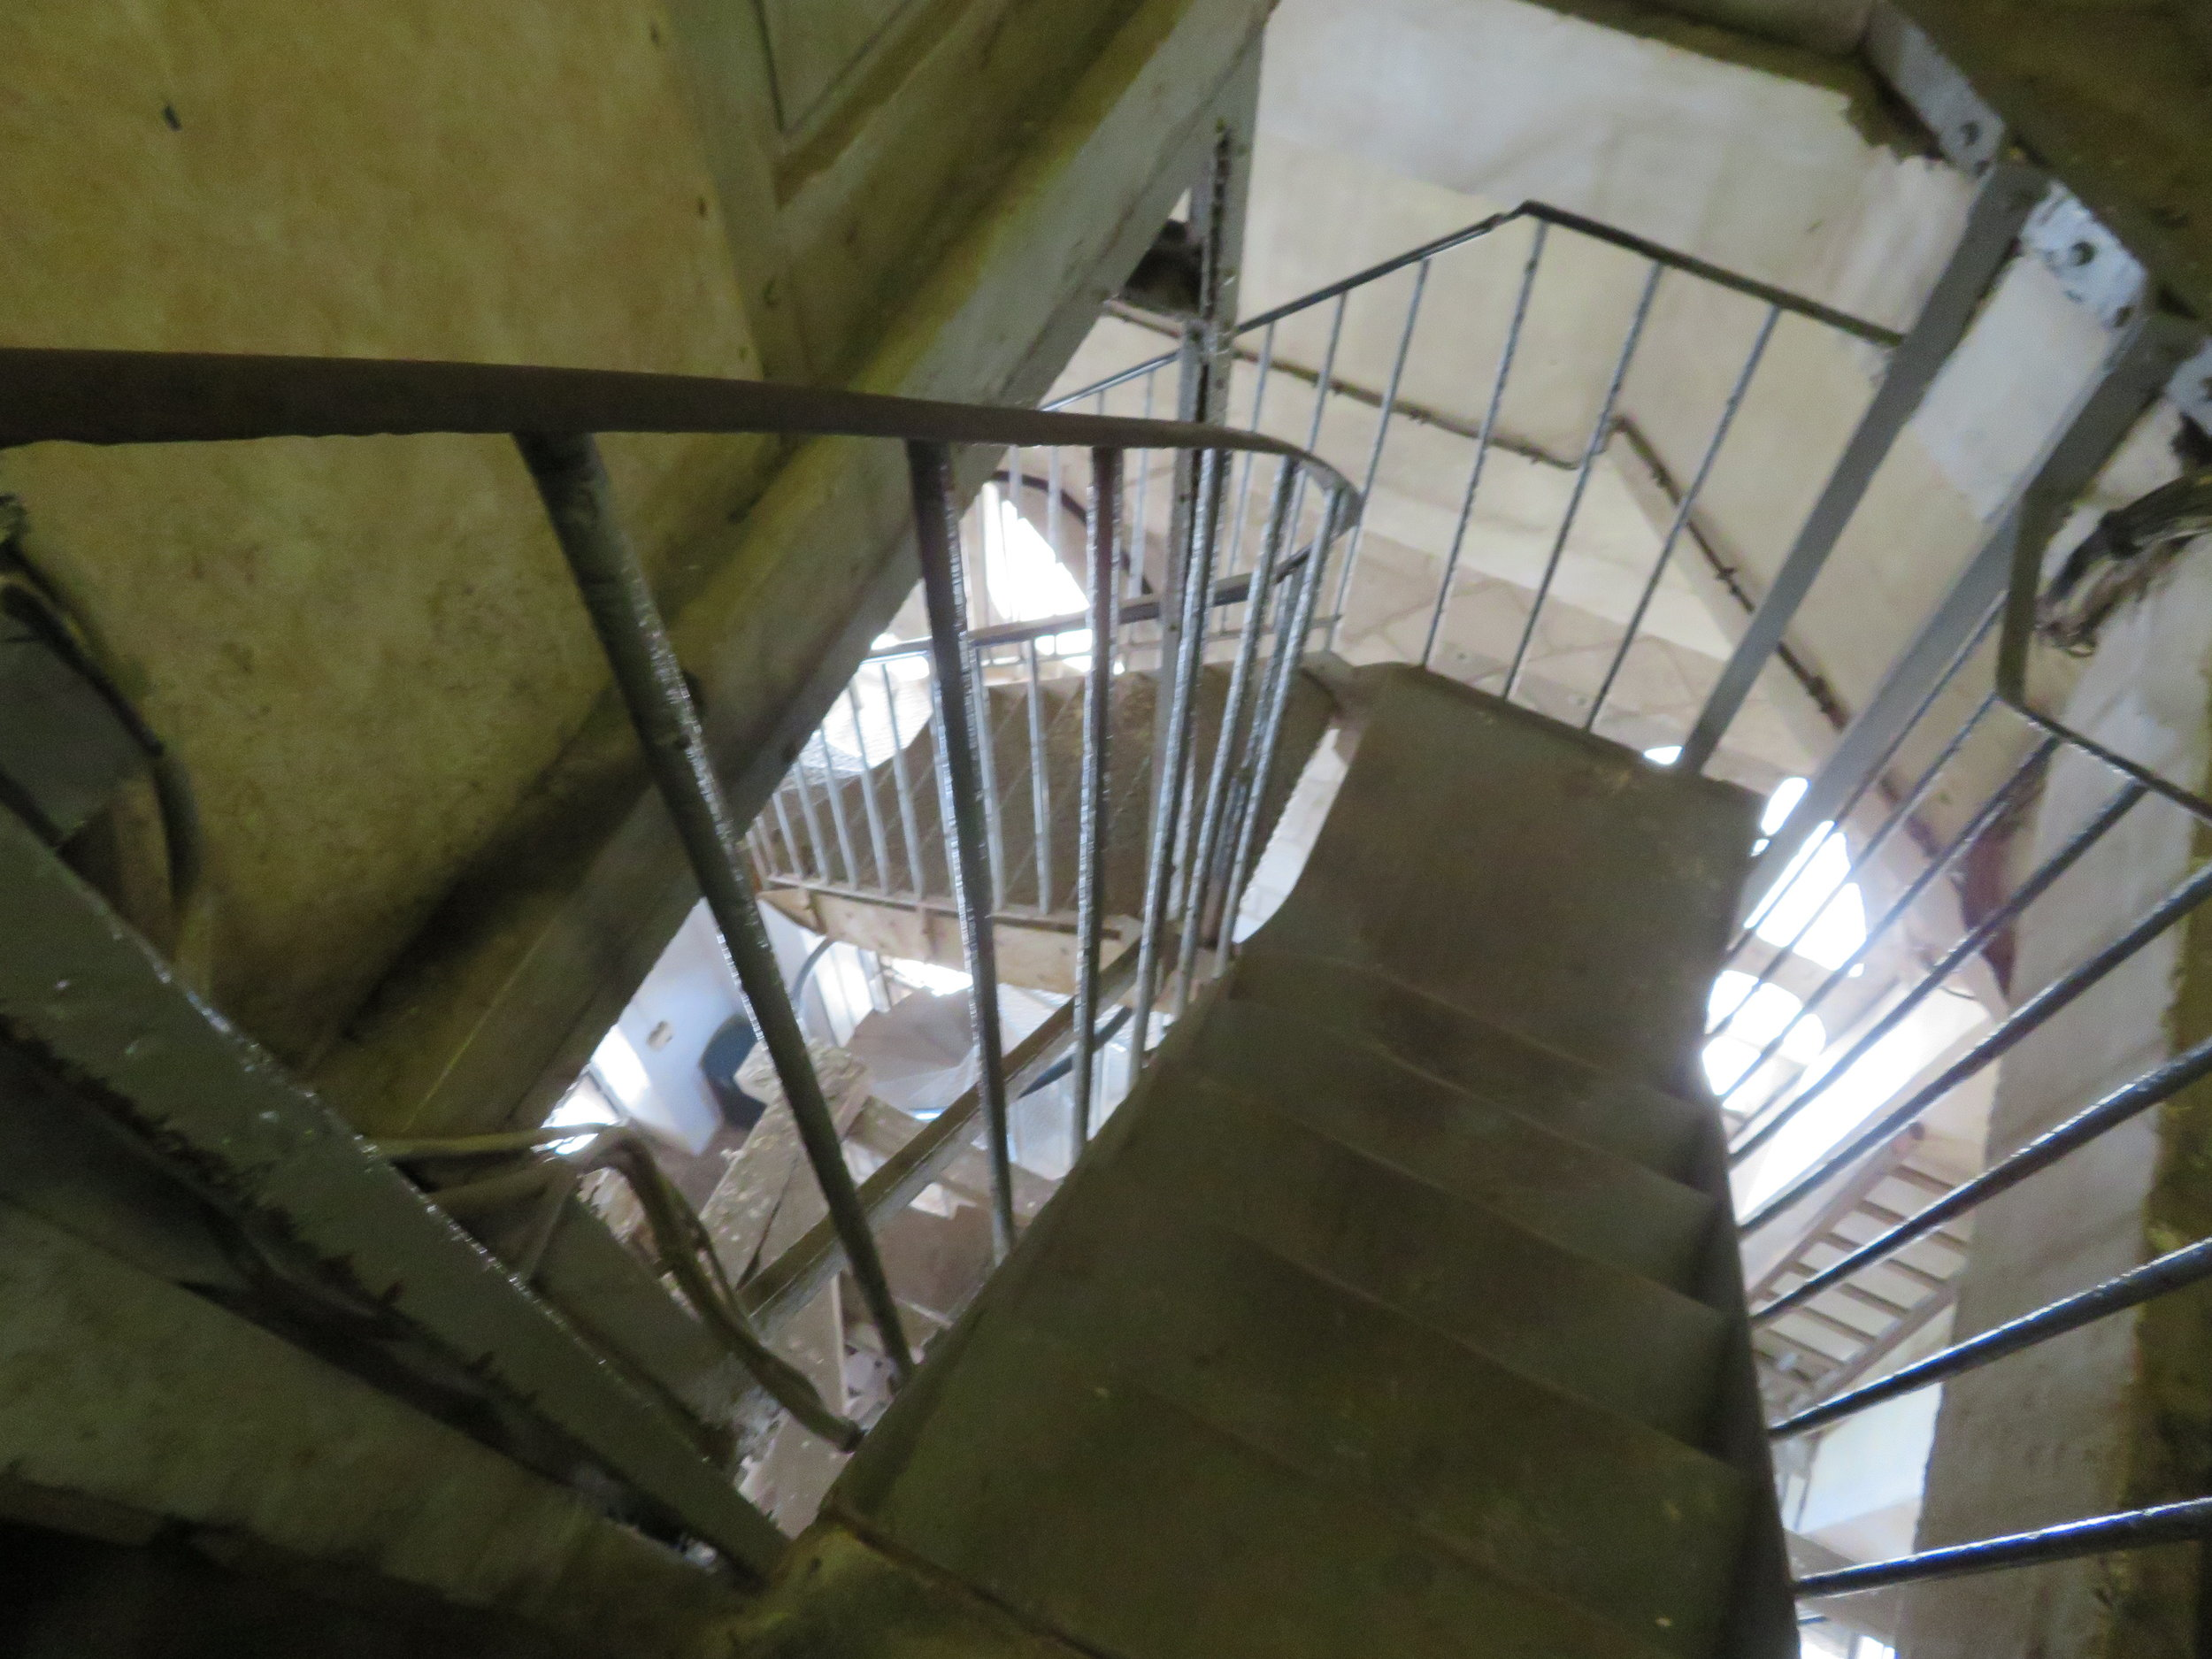 Belfry's spiral staircase